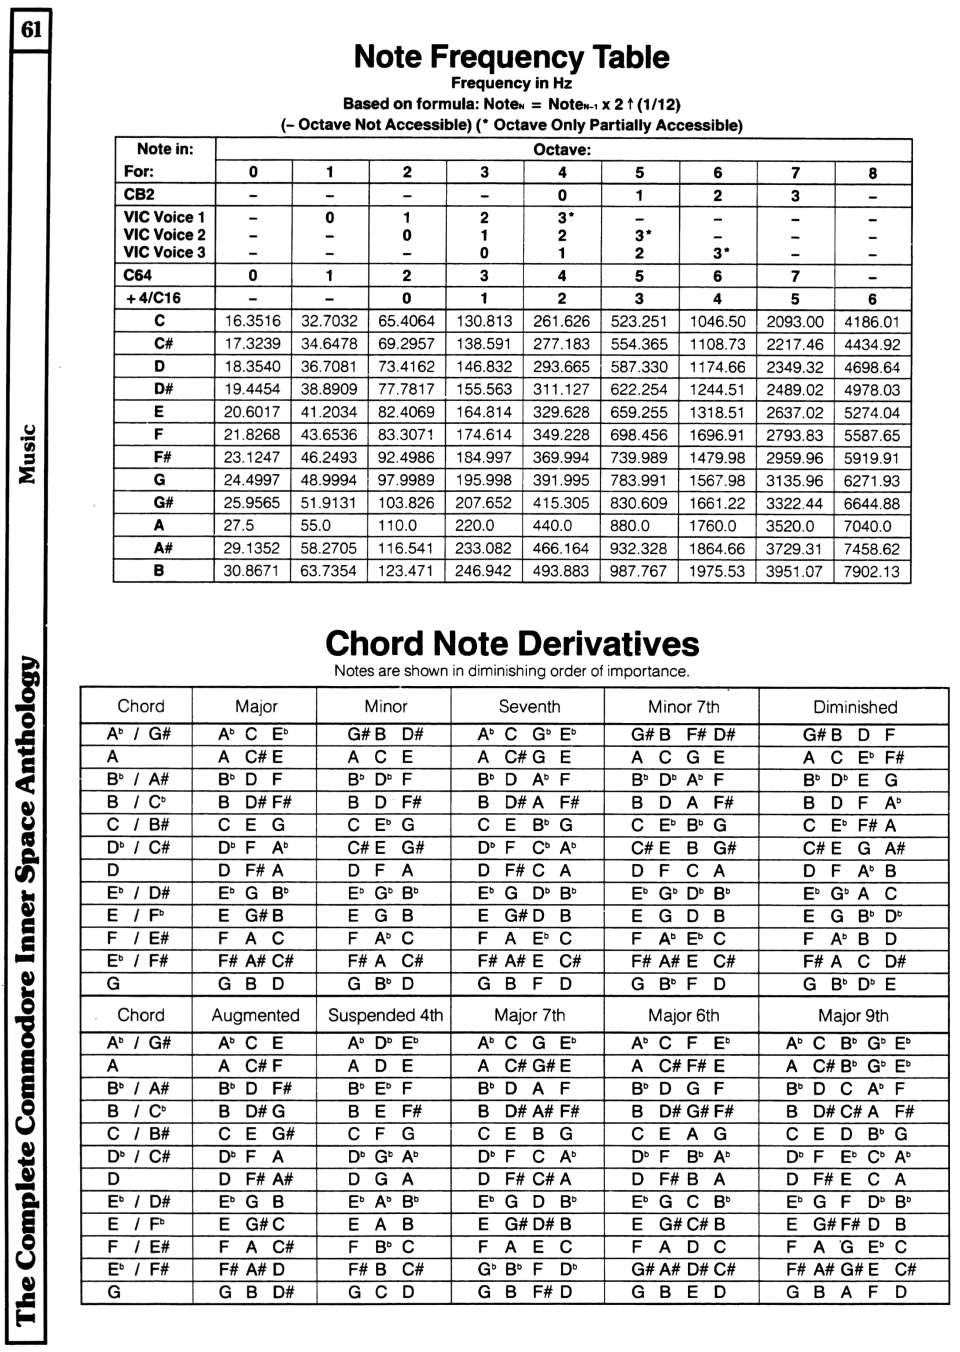 [960�1352 Music Section: Note Frequency Table, Chord Note Derivatives]